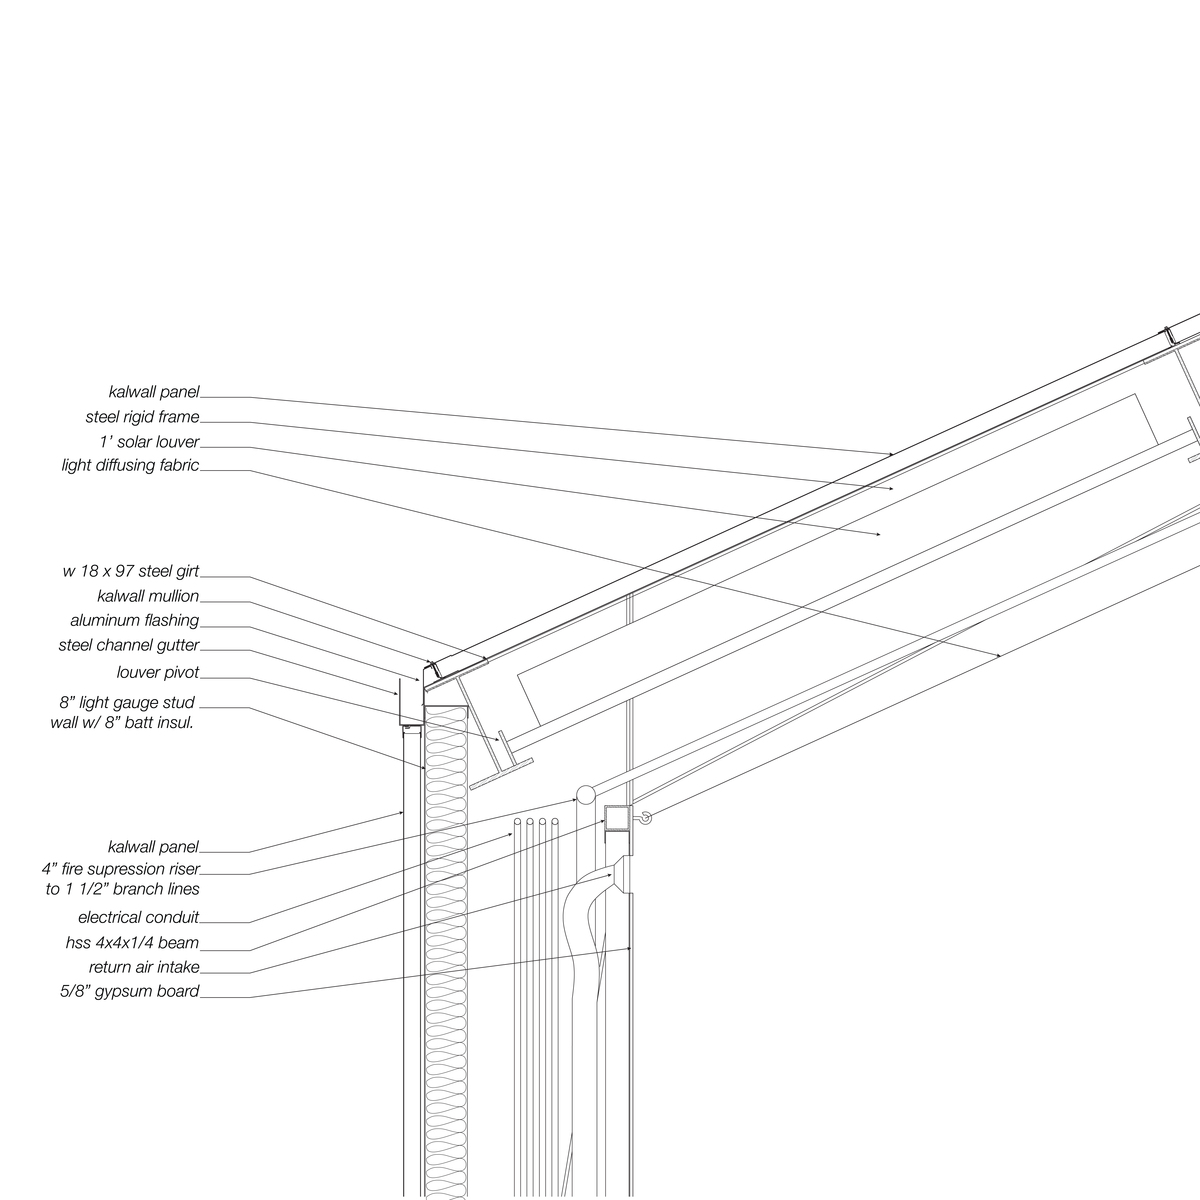 Hf Collection Auto Electrical Wiring Diagram Tig Welding Handpiece The Menil Master Plan Drawing Institute